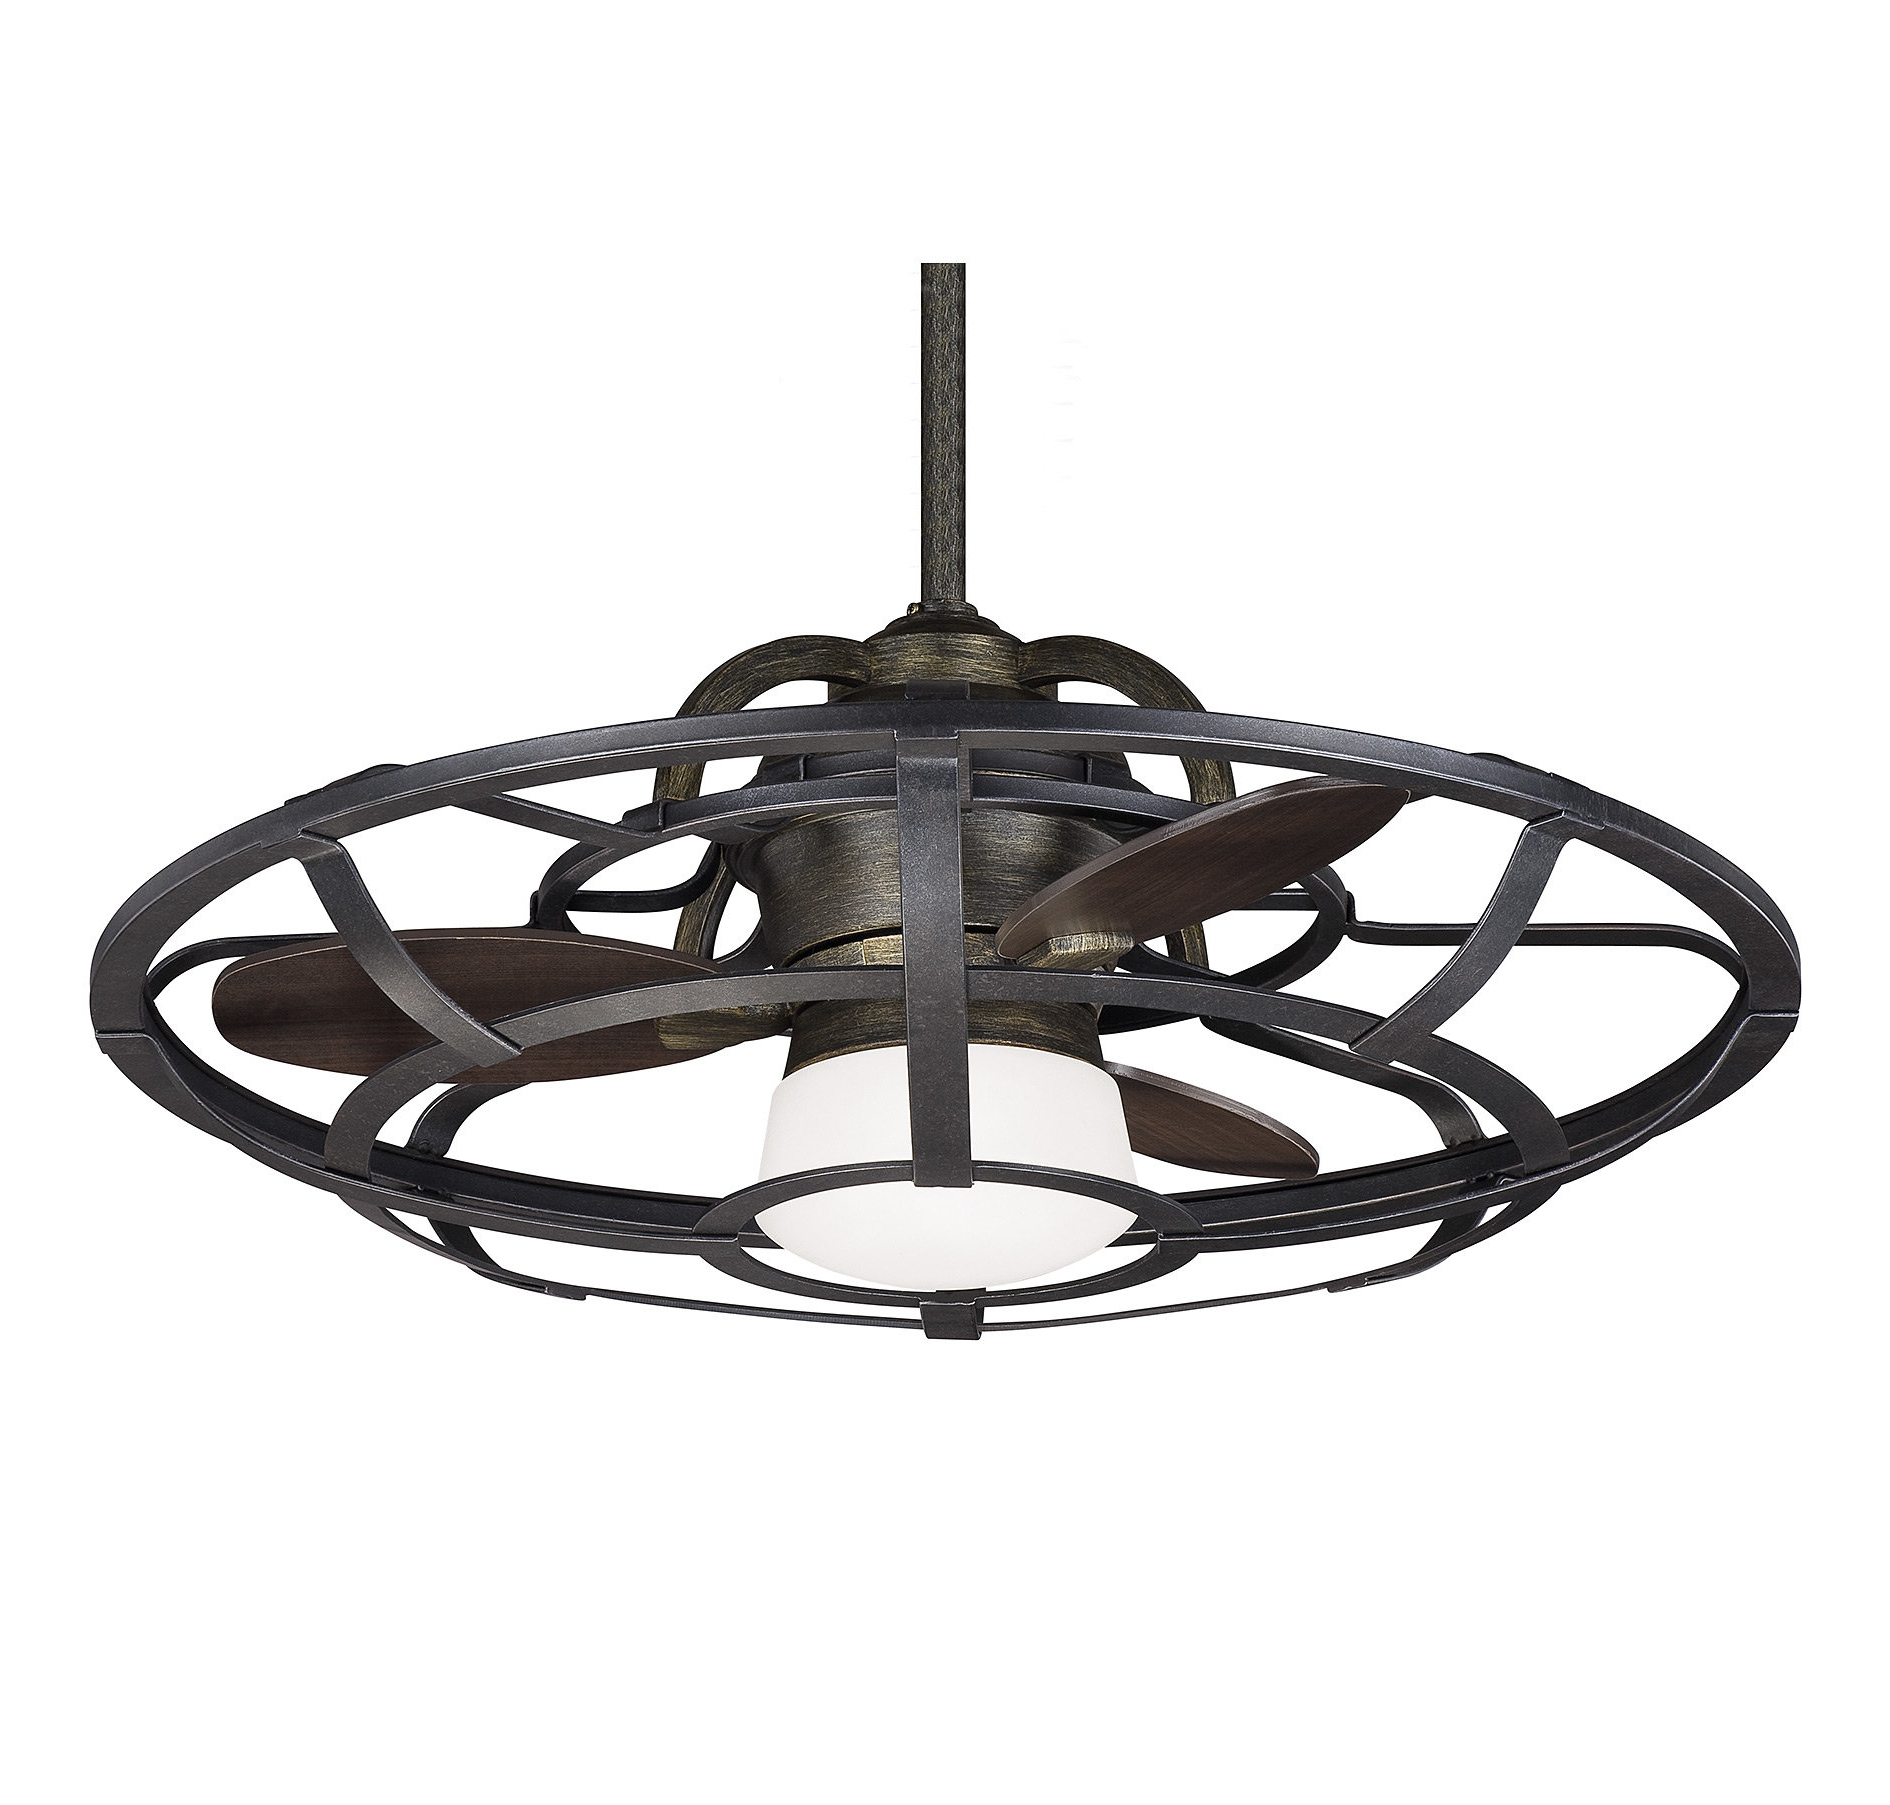 "Wilburton 3 Blade Outdoor Ceiling Fans With Regard To Recent Laurel Foundry Modern Farmhouse 26"" Wilburton 3 Blade Outdoor Ceiling Fan With Remote (View 2 of 20)"